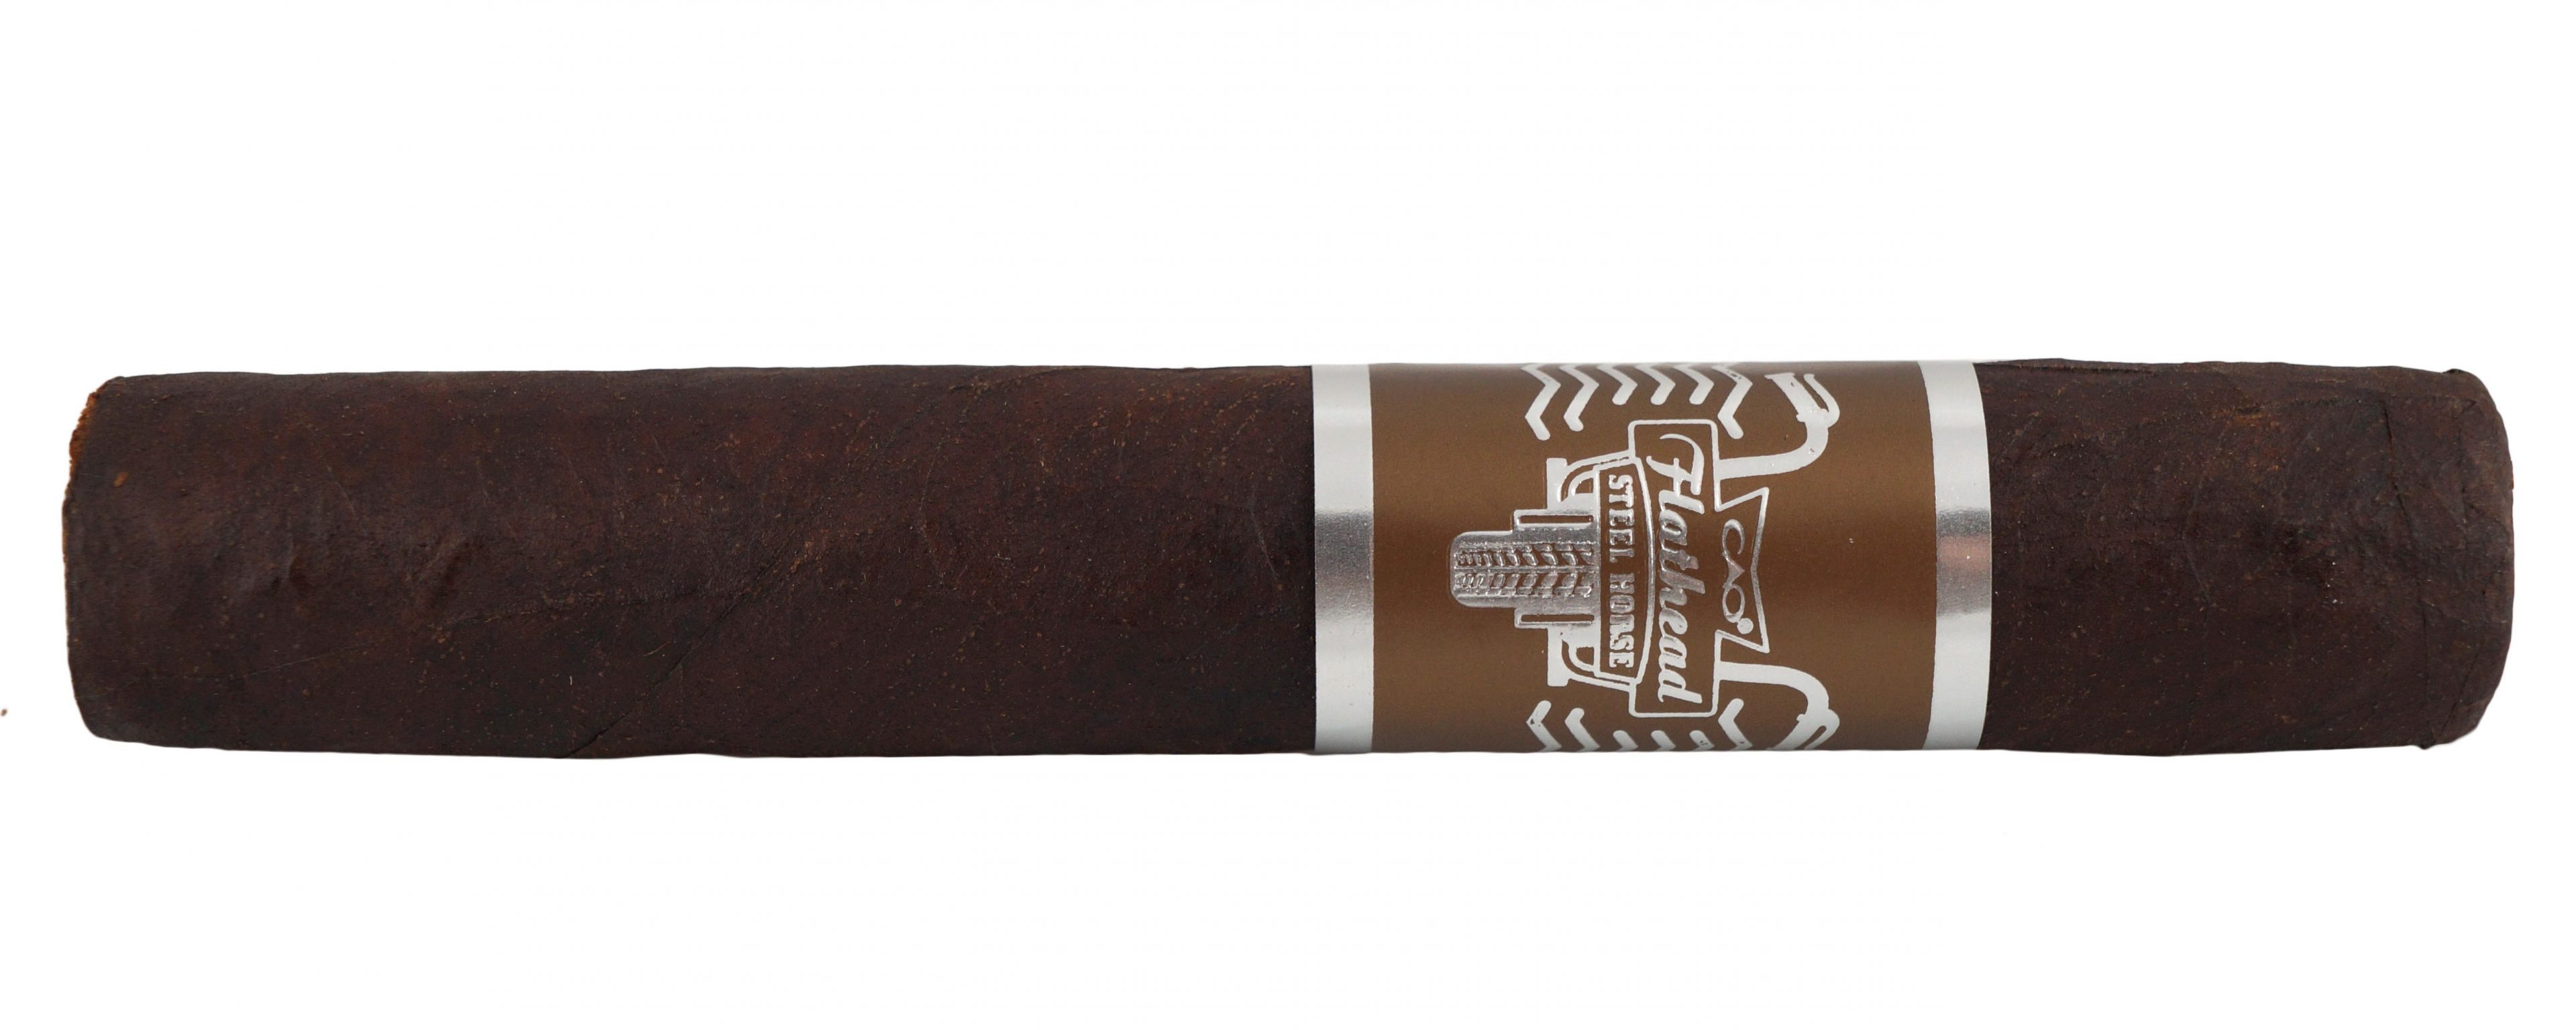 Blind Cigar Review: CAO | Flathead Steelhorse Ape Hanger